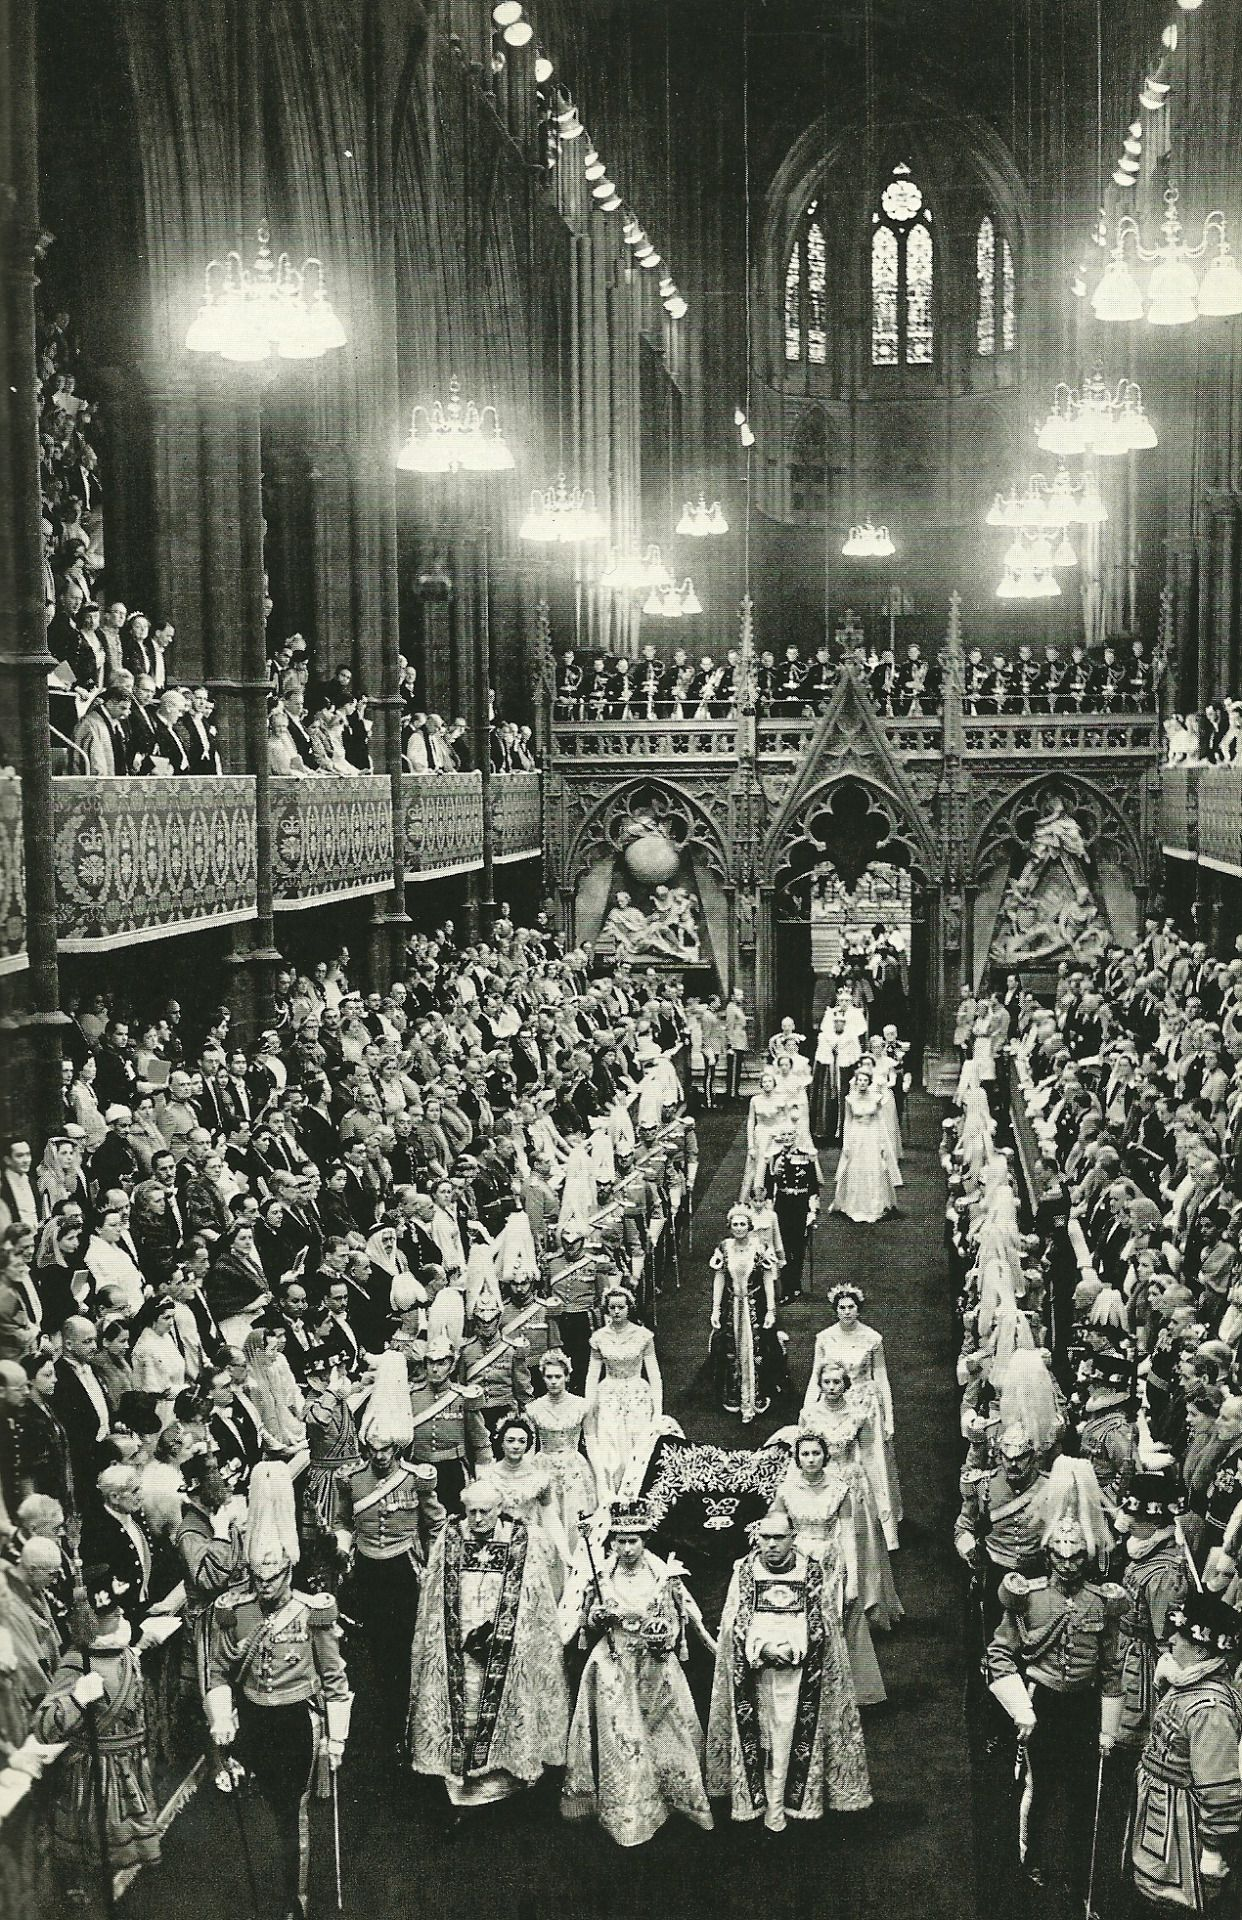 Queen Elizabeth leaves Westminster Abbey with scepter and orb in hand National Geographic | September 1953